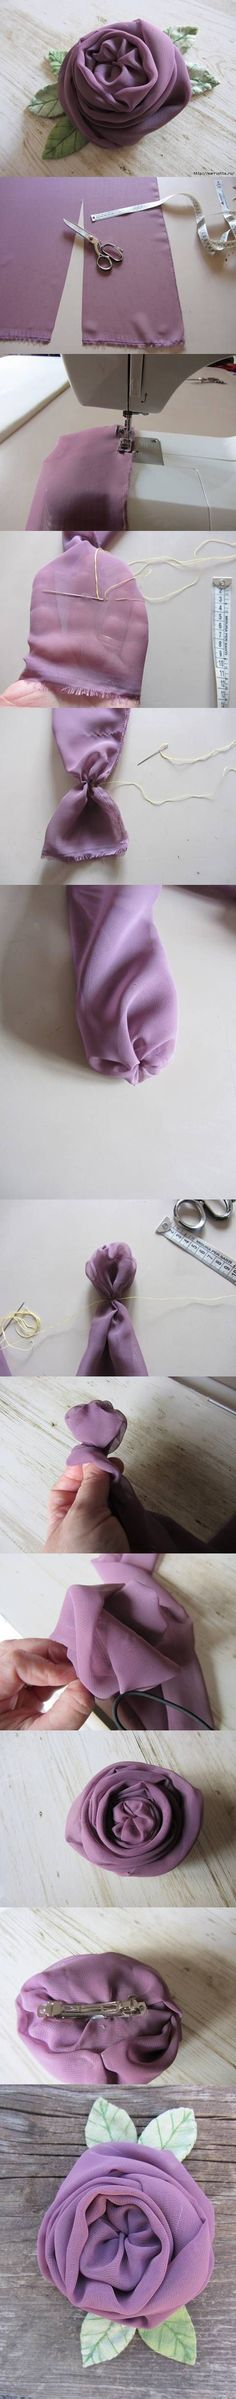 diy chiffon, english roses, diy crafts, purple flowers, chiffon english, silk scarves, purple roses, diy projects, fabric flower